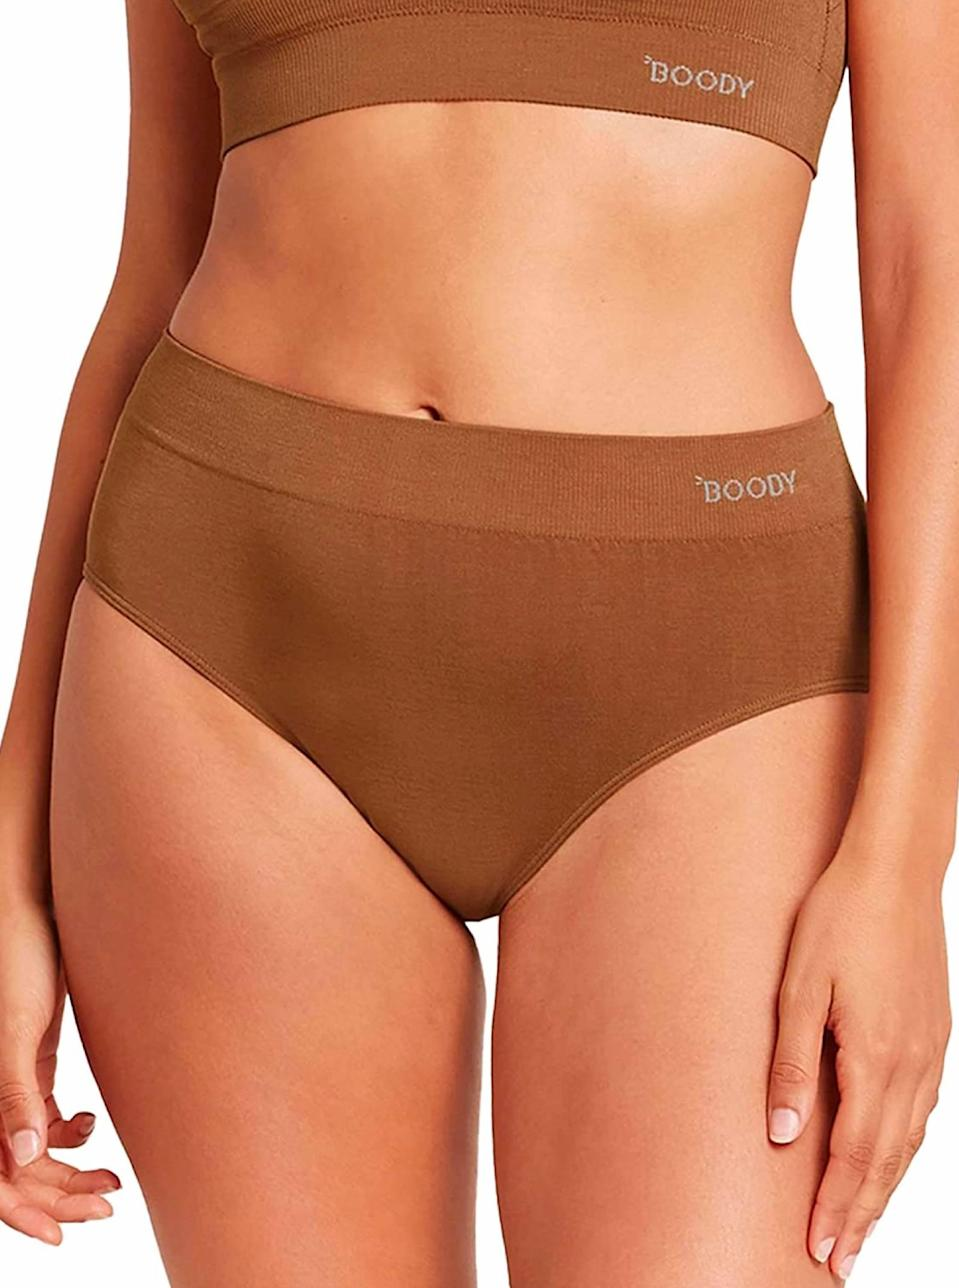 """Lighter and airier than cotton, Boody's full coverage undies are a must-have for warm-weather dressing. This pair of underwear is made from a lightweight, sustainably sourced bamboo fiber that's especially welcome on sticky-hot summer days. $14, Amazon. <a href=""""https://www.amazon.com/Boody-EcoWear-Seamless-Underwear-Natural/dp/B07NJ94JSG/ref="""" rel=""""nofollow noopener"""" target=""""_blank"""" data-ylk=""""slk:Get it now!"""" class=""""link rapid-noclick-resp"""">Get it now!</a>"""